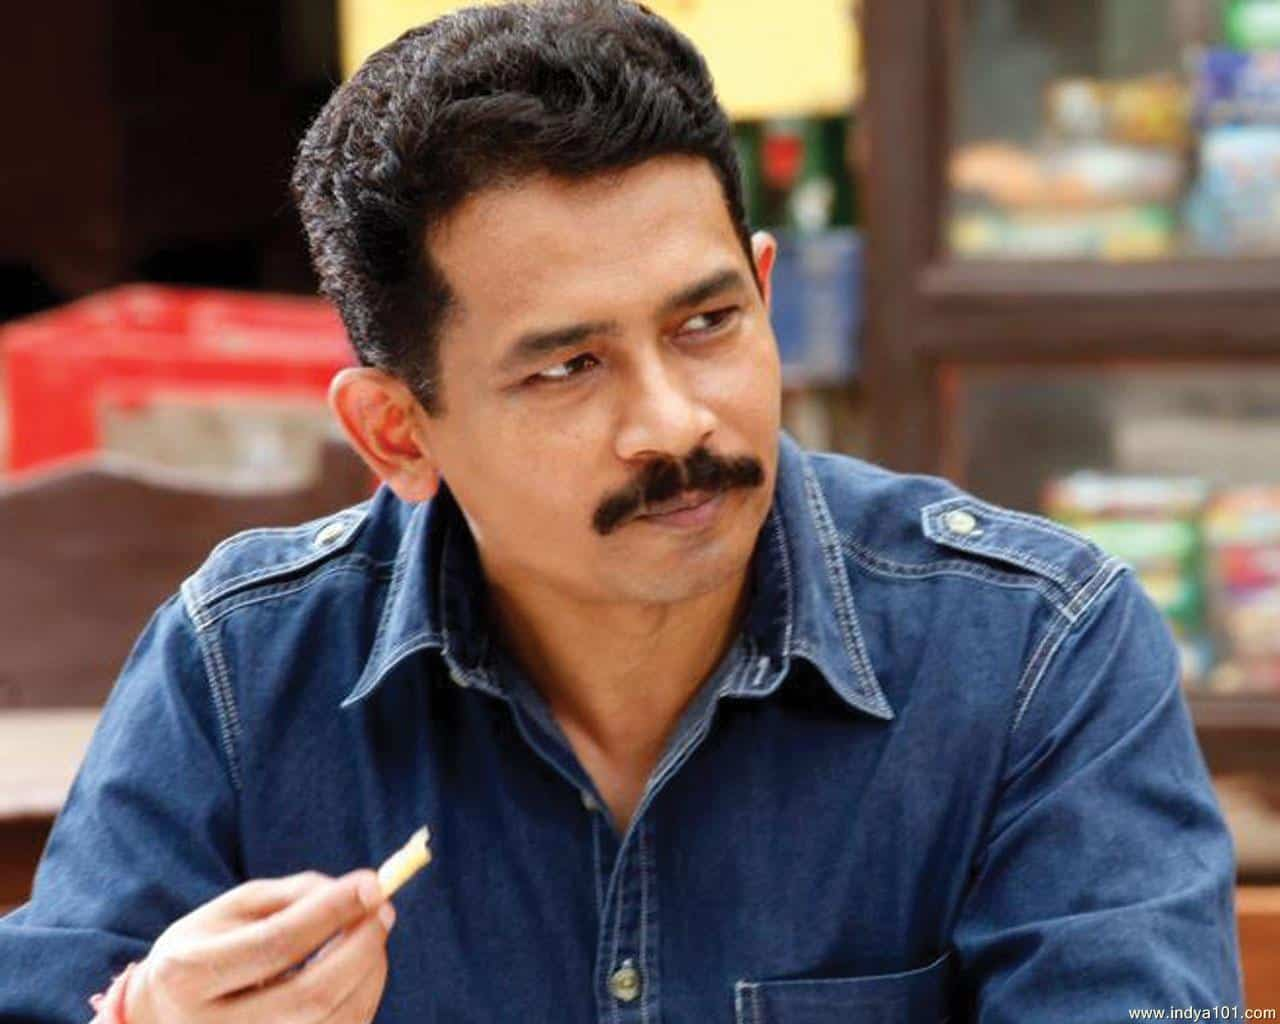 Talented Bollywood Stars: Atul Kulkarni. Bollywood Stars are away from fame despite excellent performances